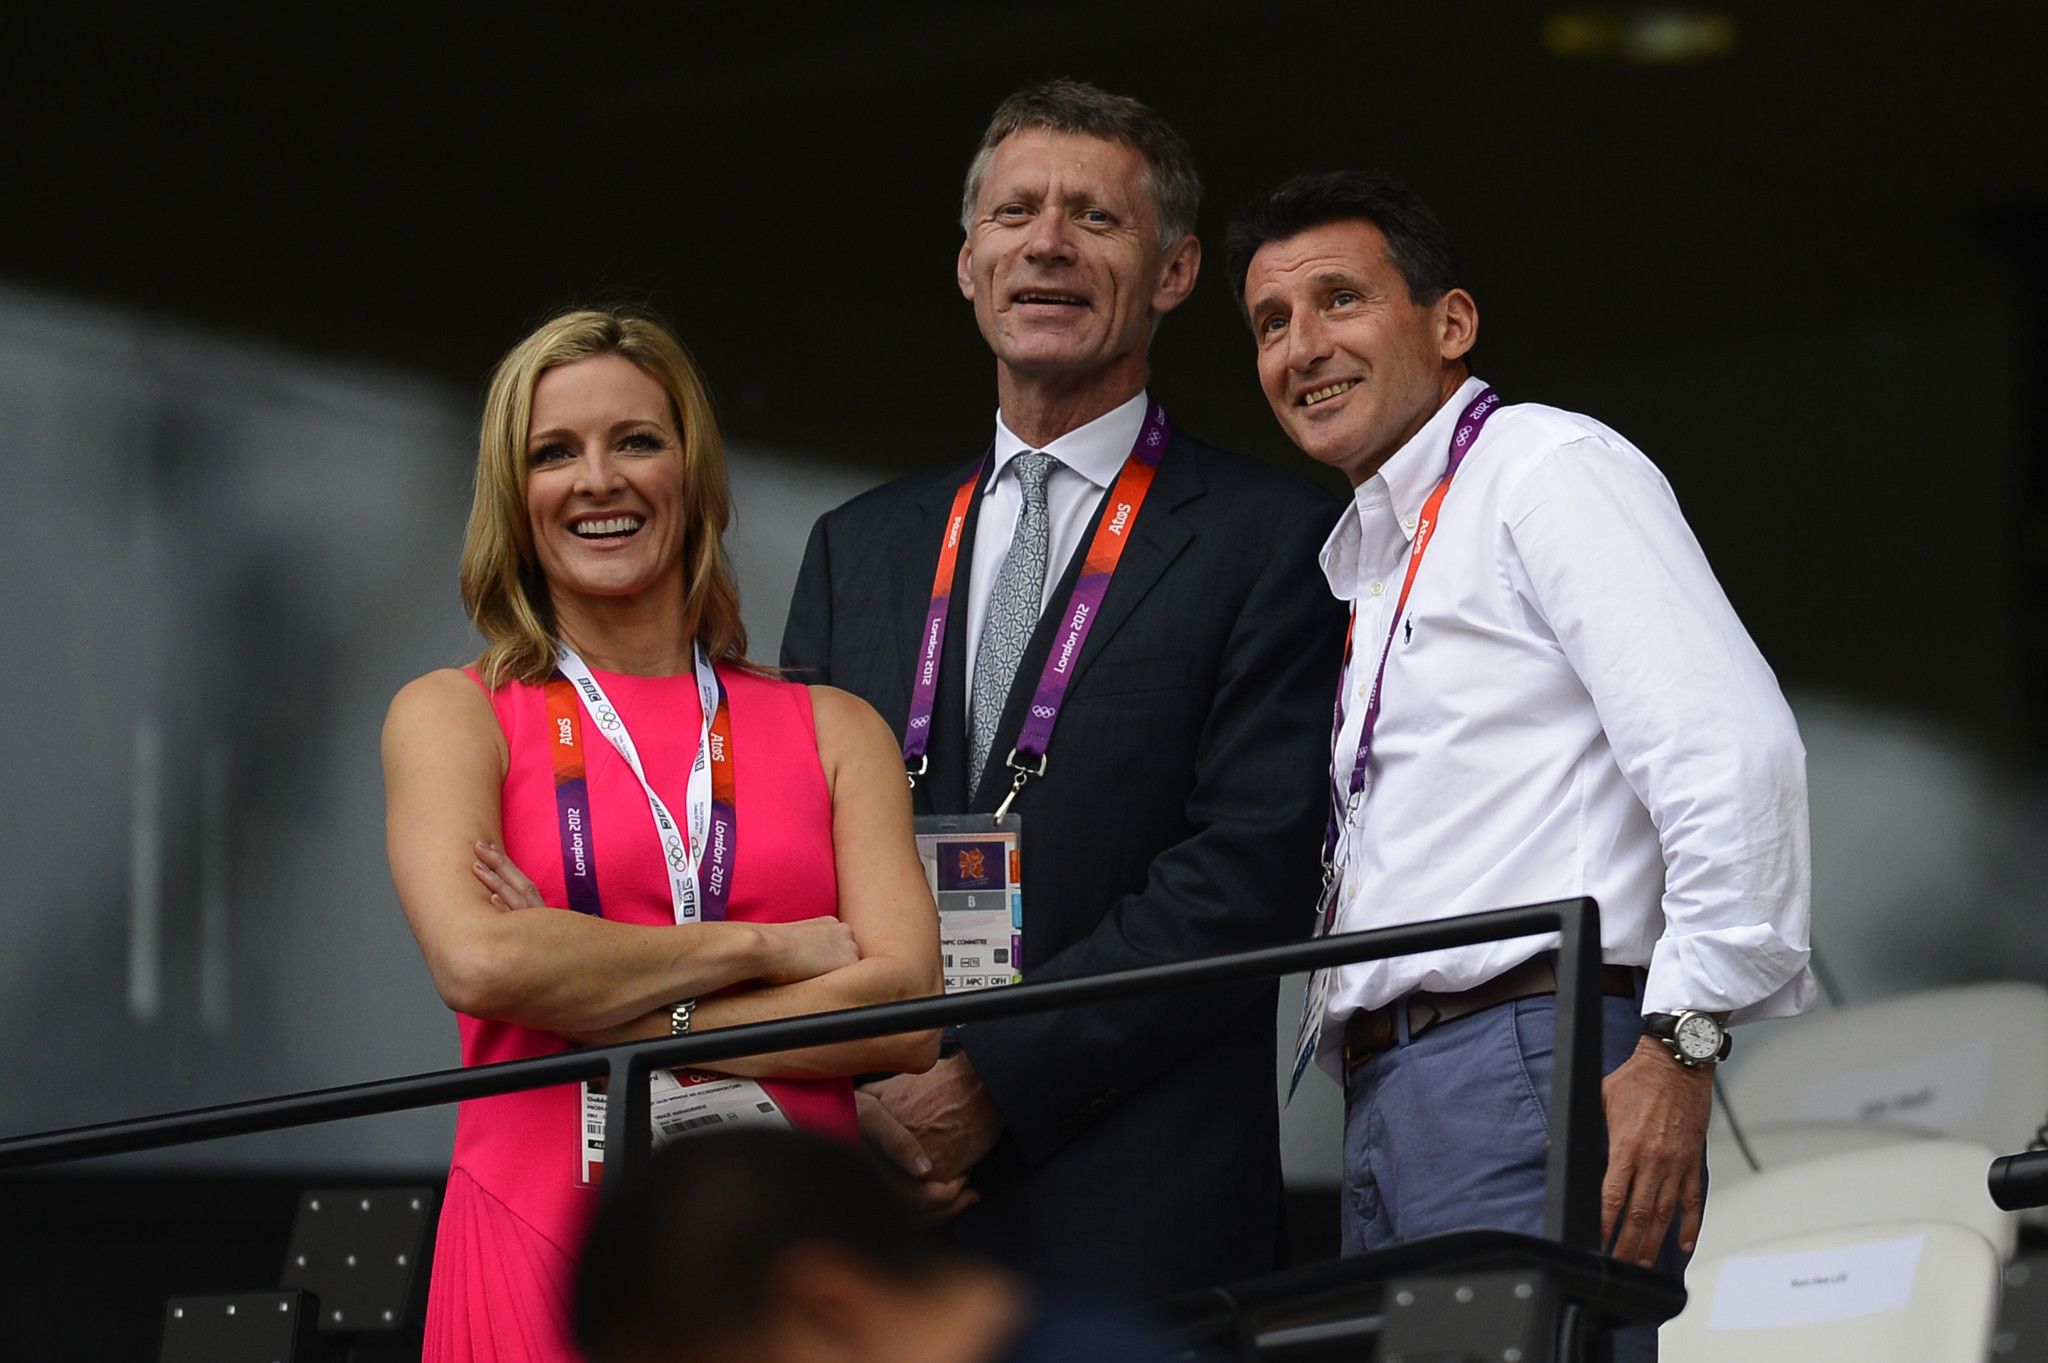 Anthony Edgar, pictured here with British television presenter Gabby Logan and London 2012 chairman Sebastian Coe, was responsible for managing the delivery of media facilities and services at Olympic Games ©Getty Images